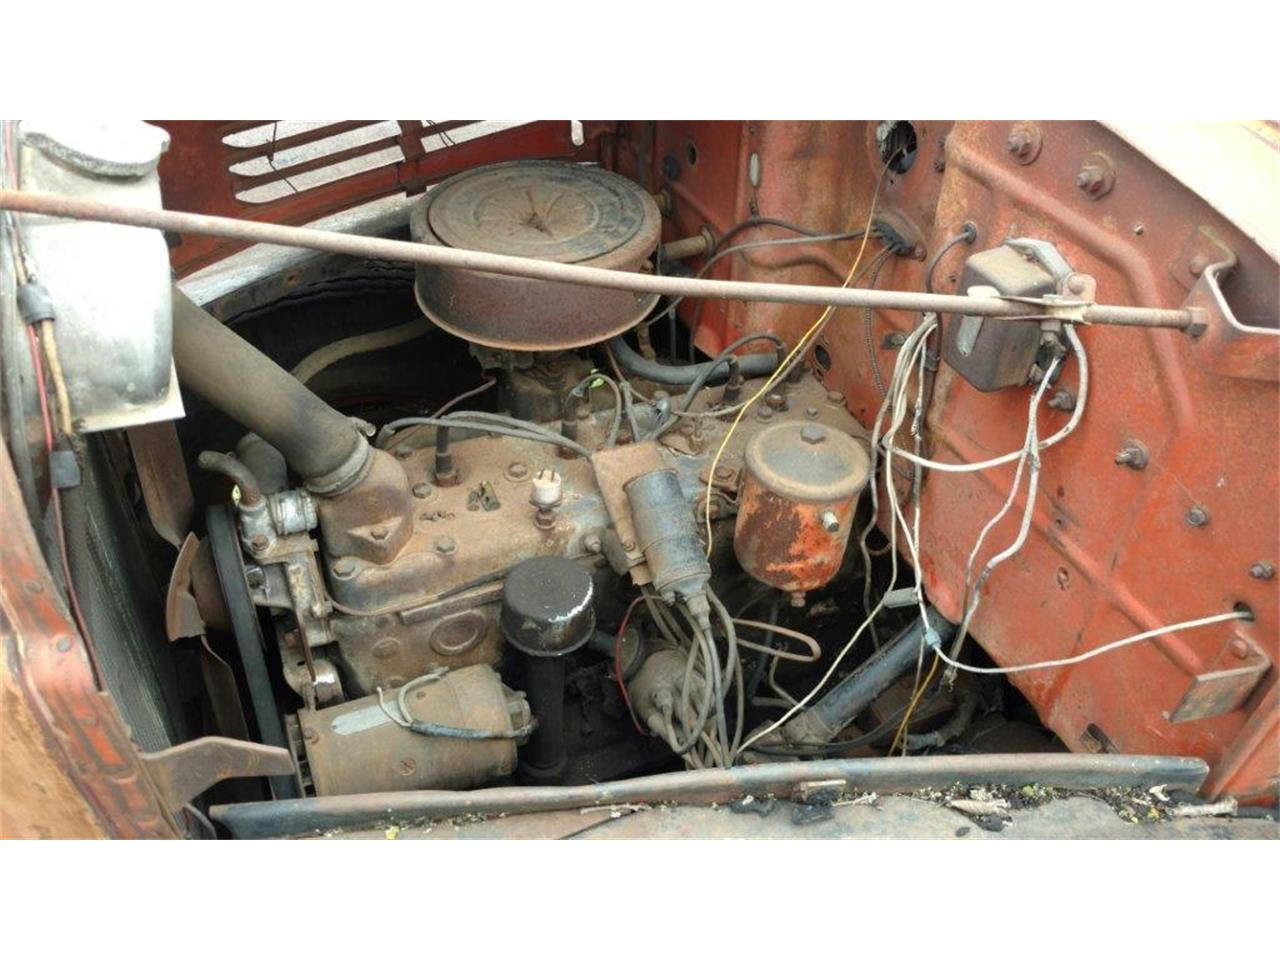 Large Picture of Classic '40 Dodge Pickup - $2,500.00 Offered by Dan's Old Cars - LWU5